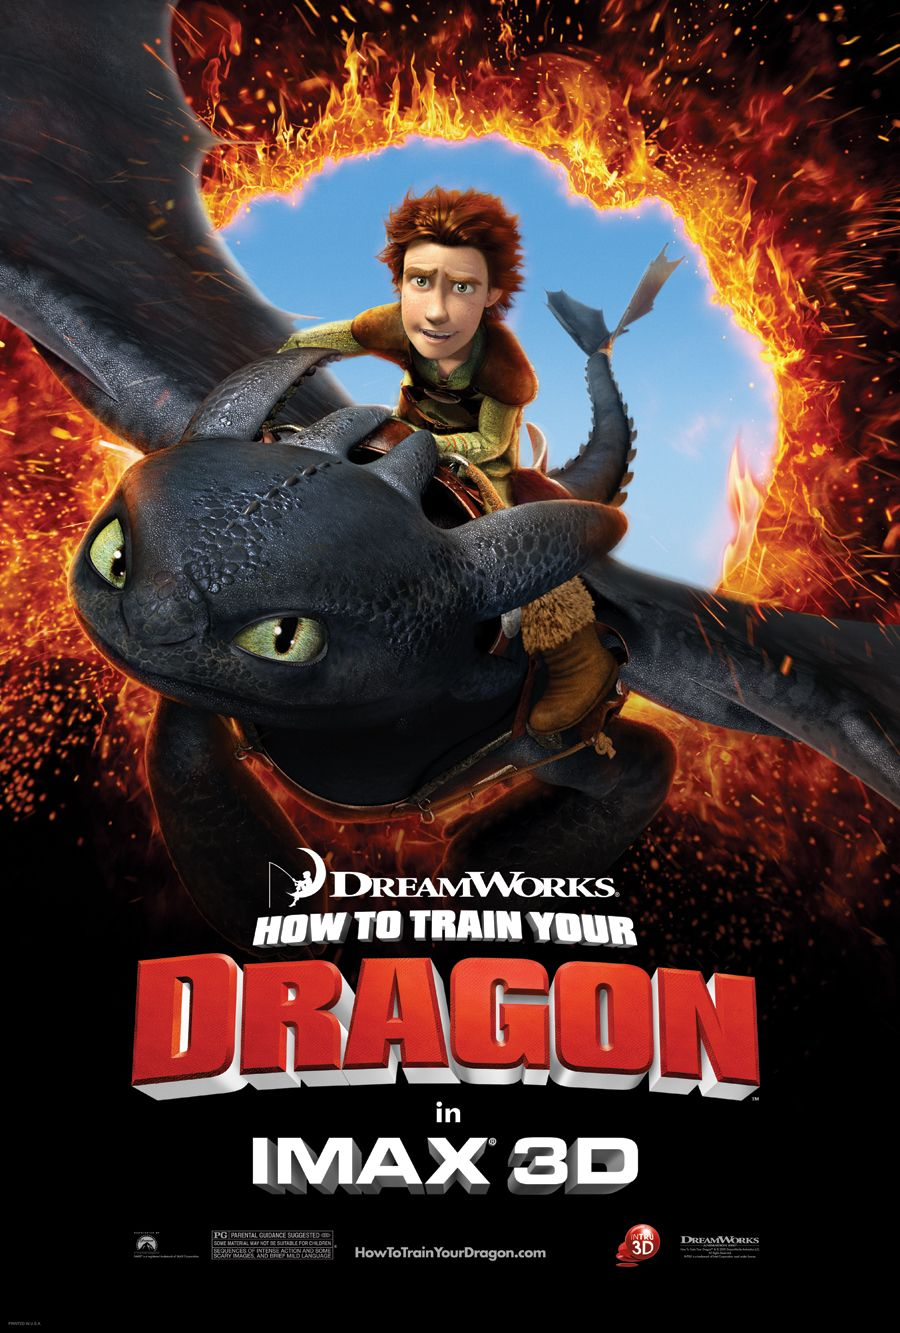 MySF Reviews - How to Train Your Dragon